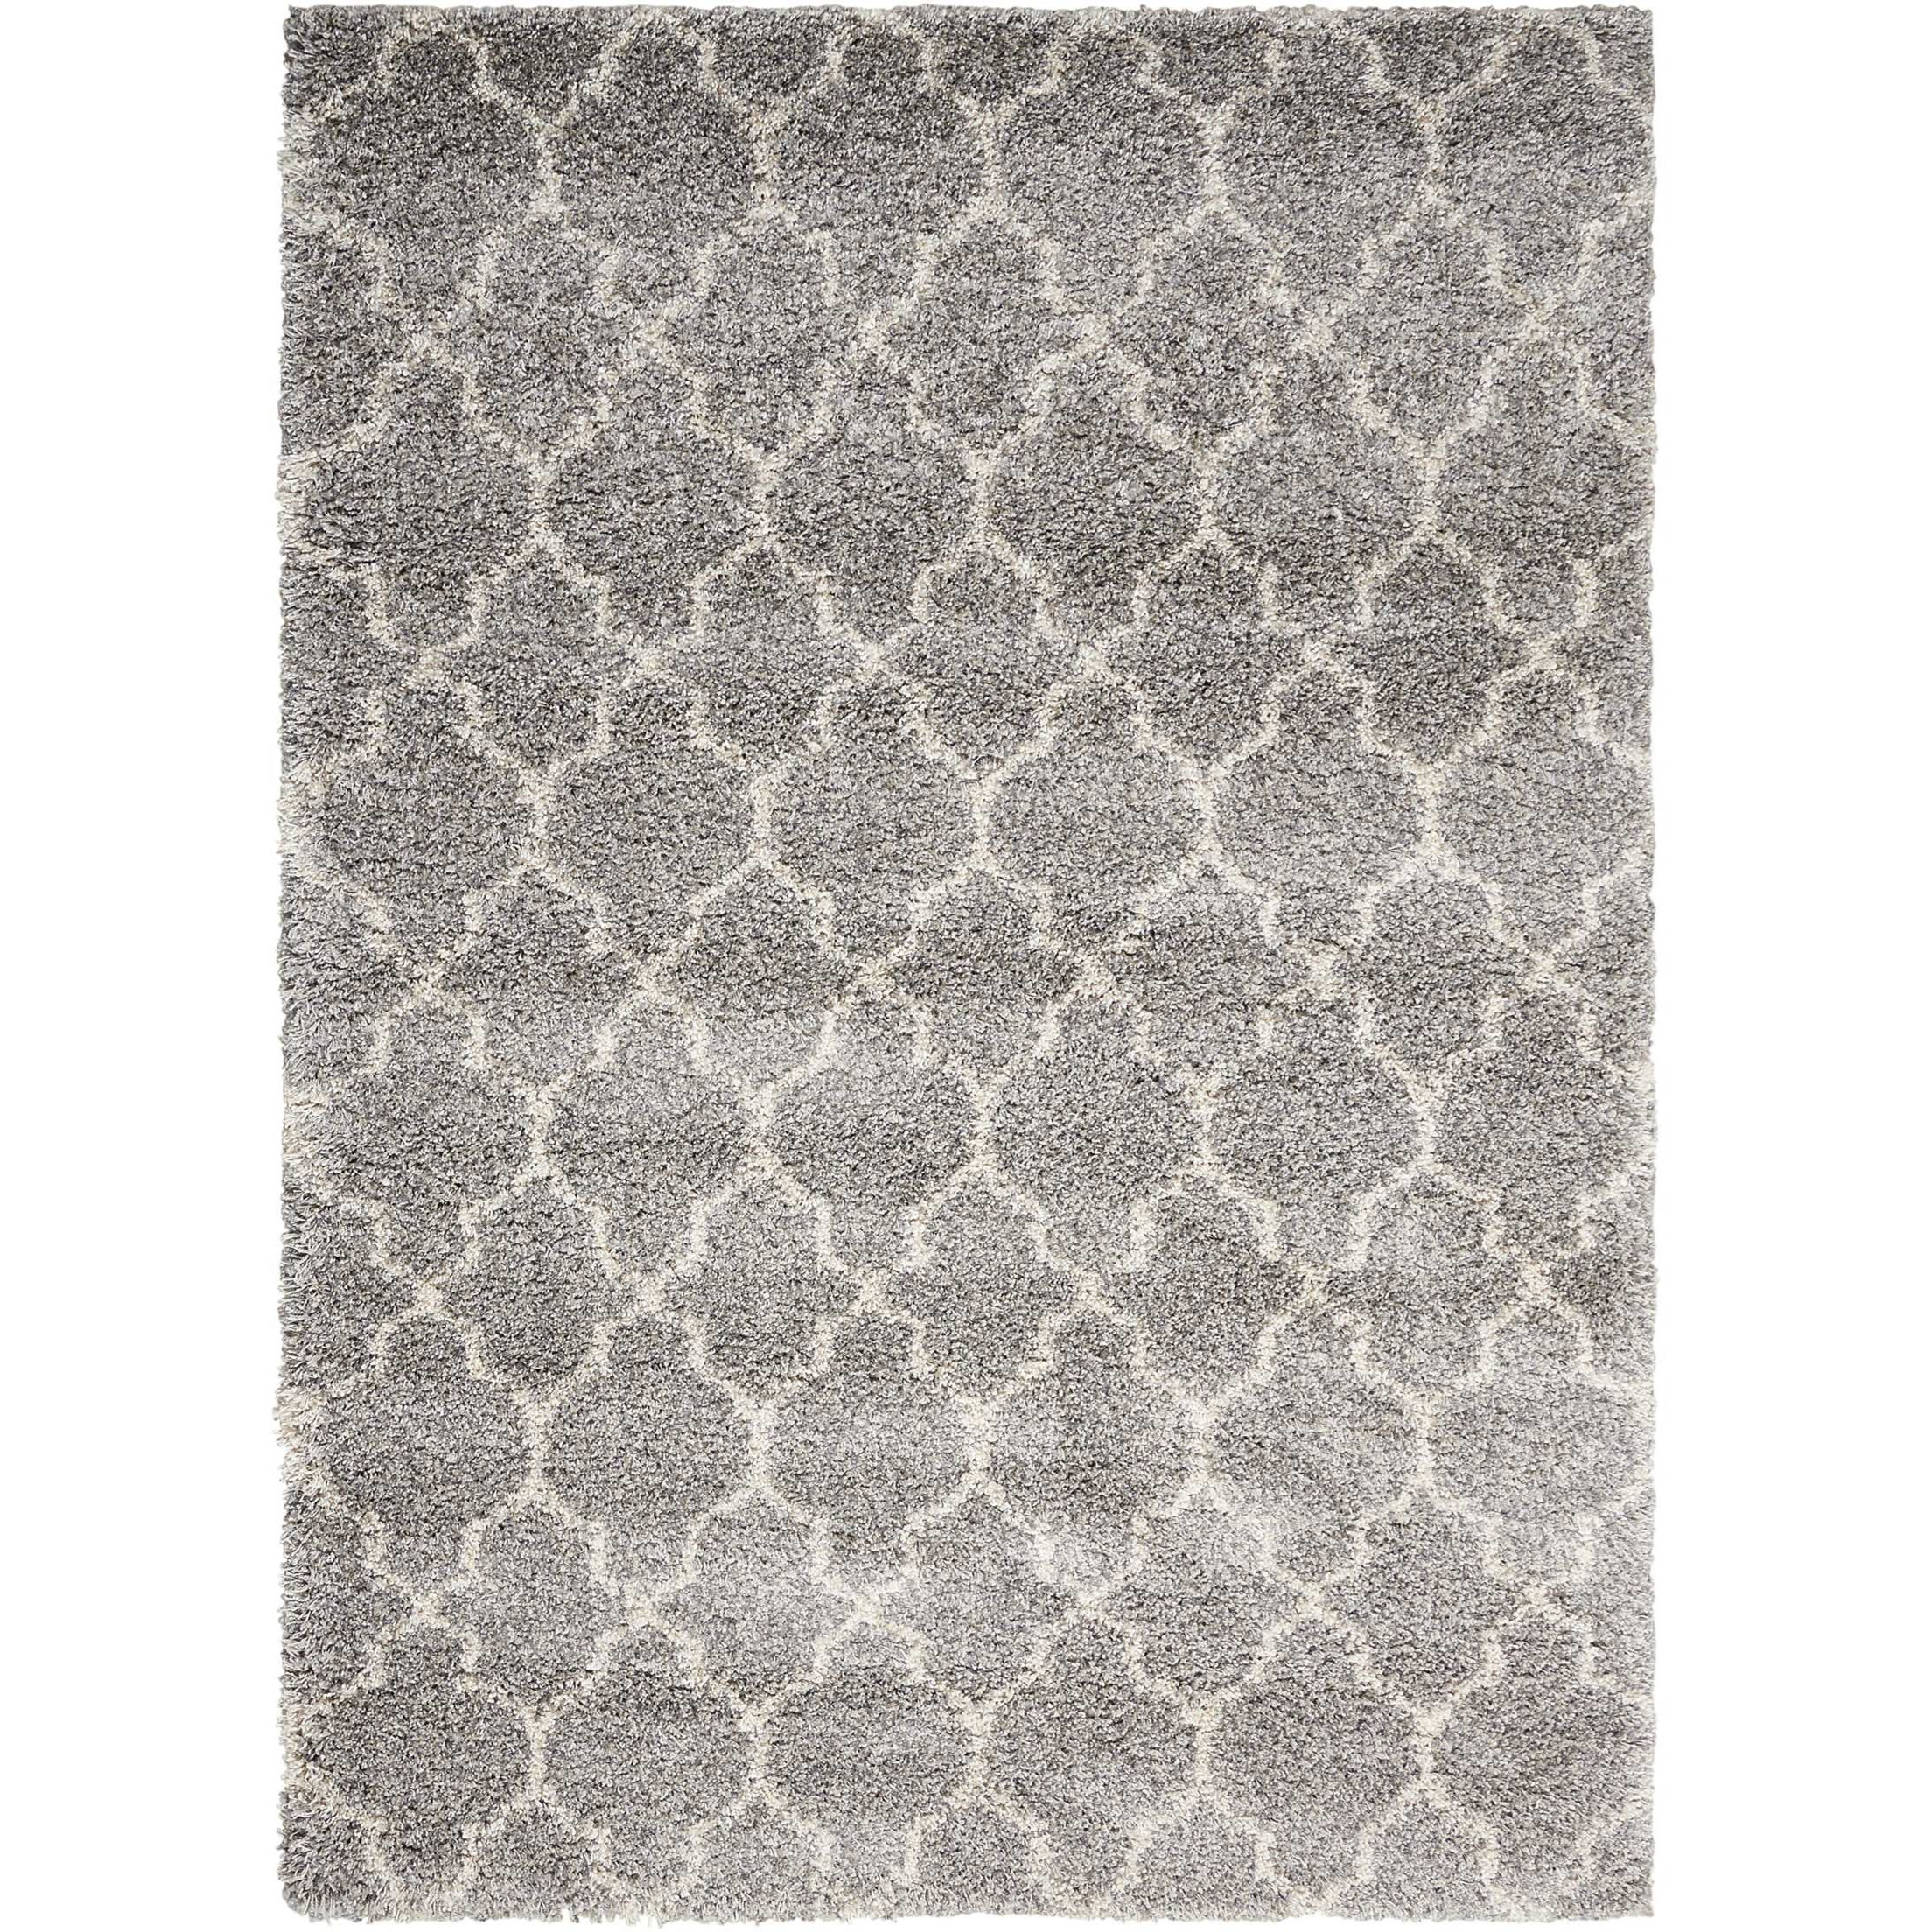 "Amore 5'3"" x 7'5"" Ash Rectangle Rug by Nourison at Sprintz Furniture"